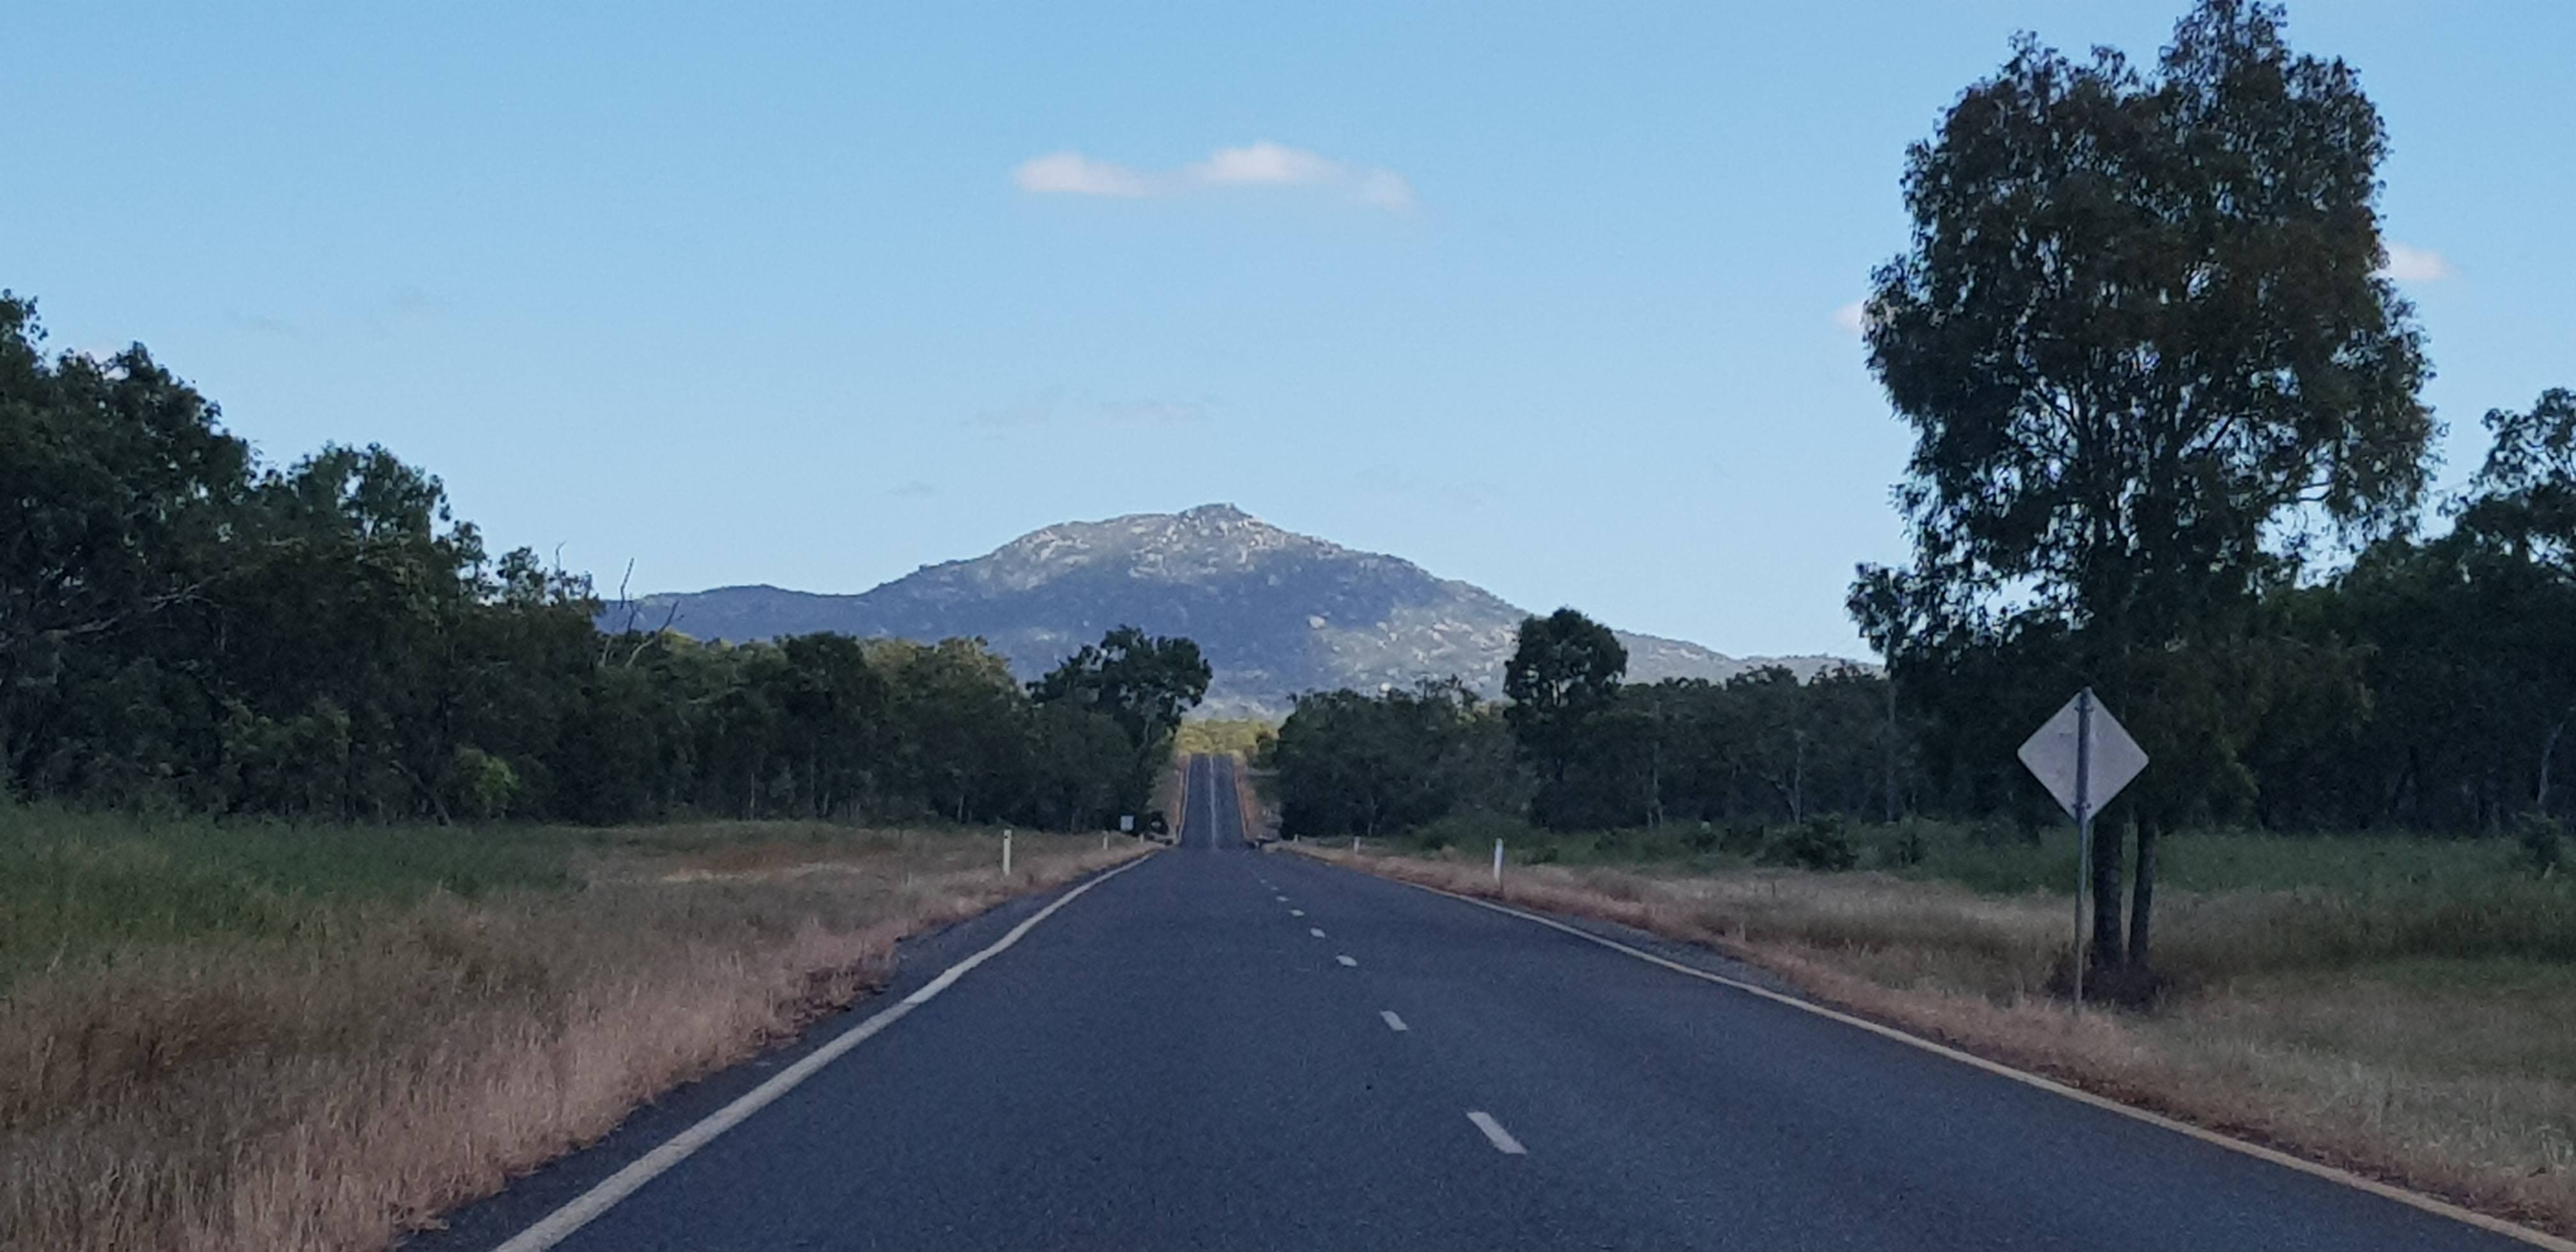 The road to Cooktown - Black Mountain